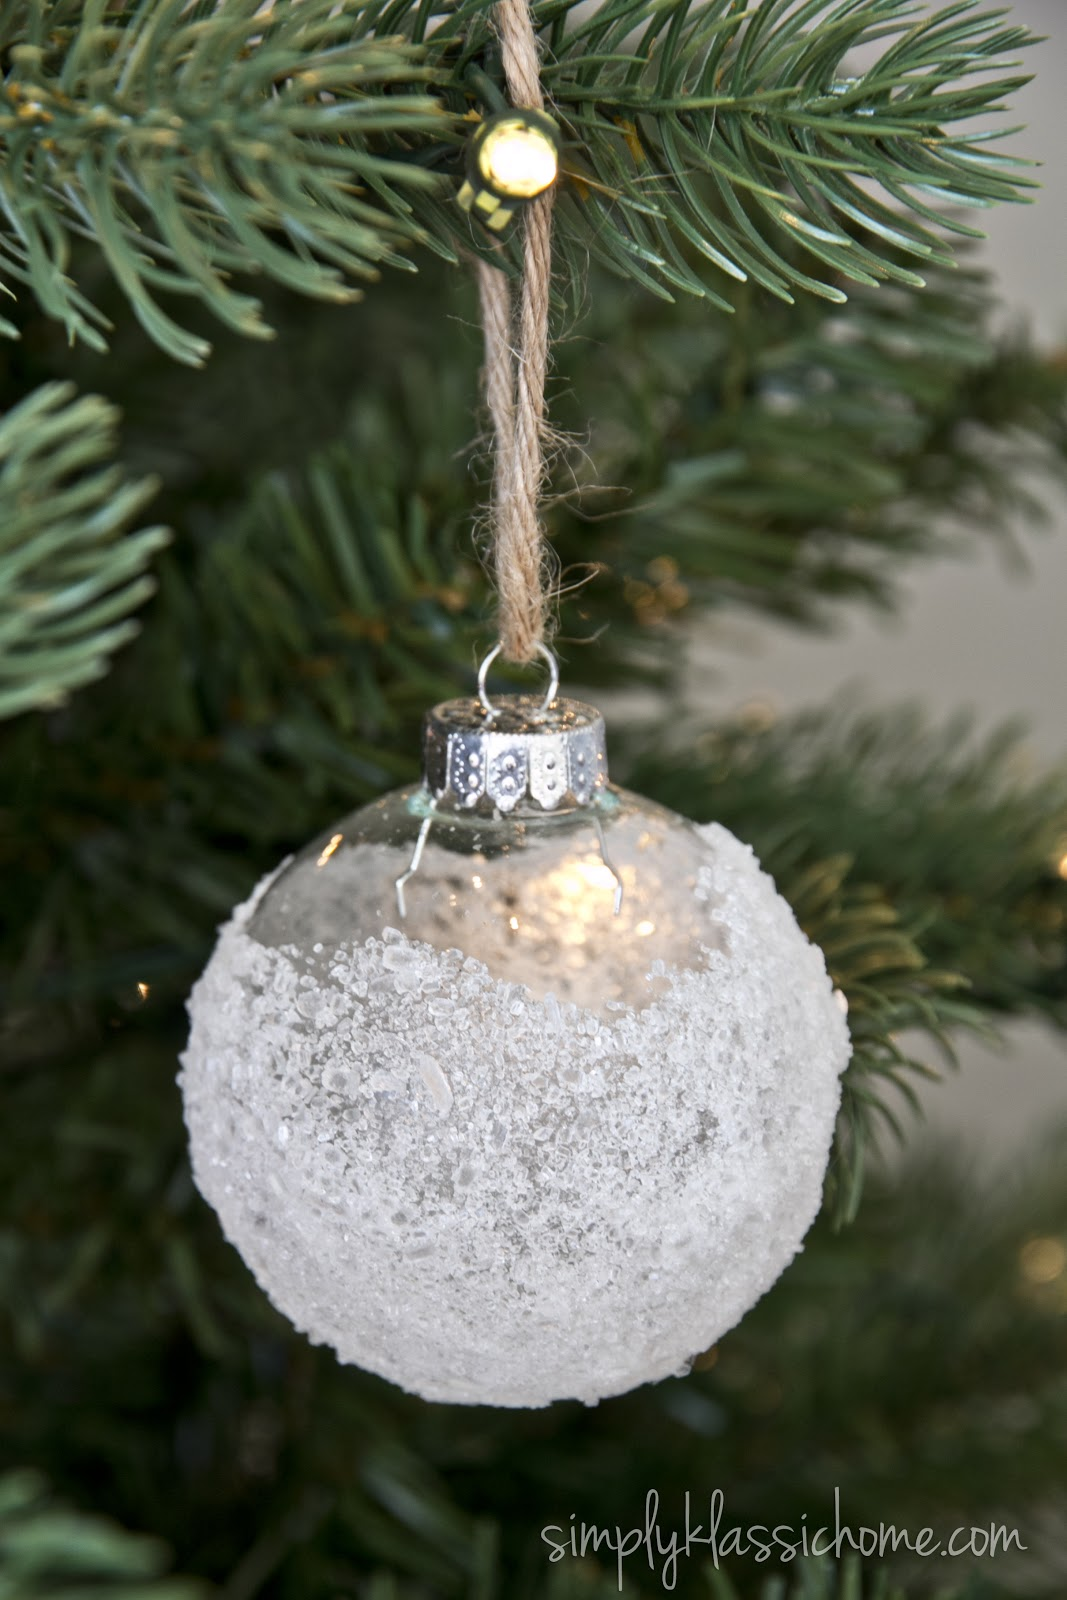 ten handmade ornaments in under an hour - Show Me Christmas Decorations